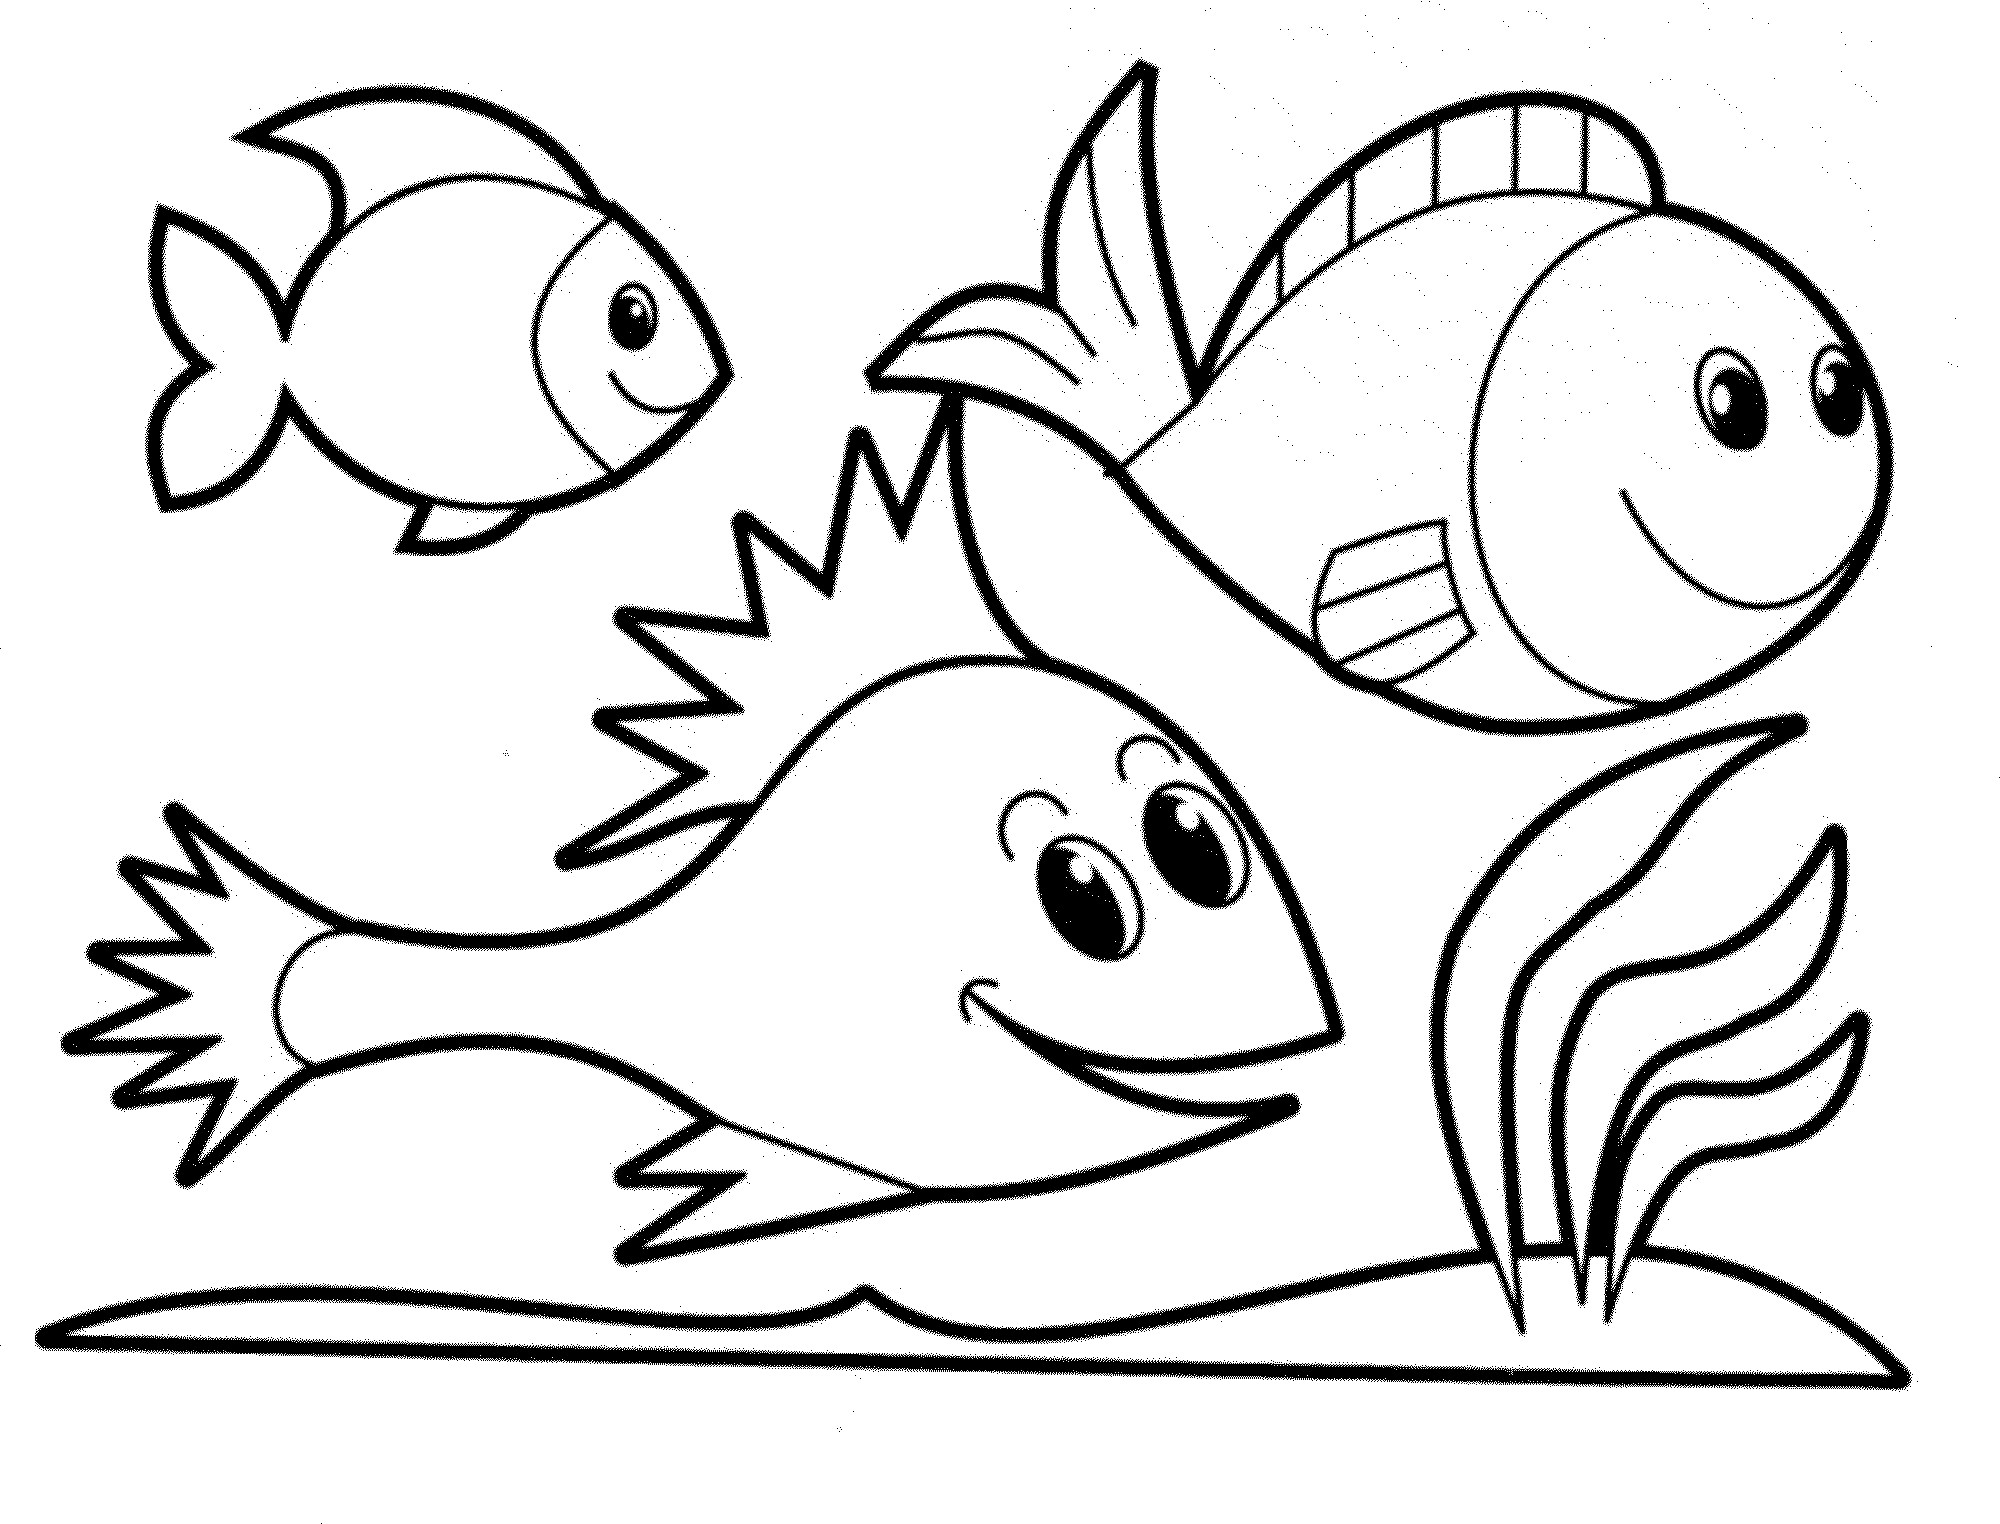 2000x1524 Fish Nature Coloring Page For Kids